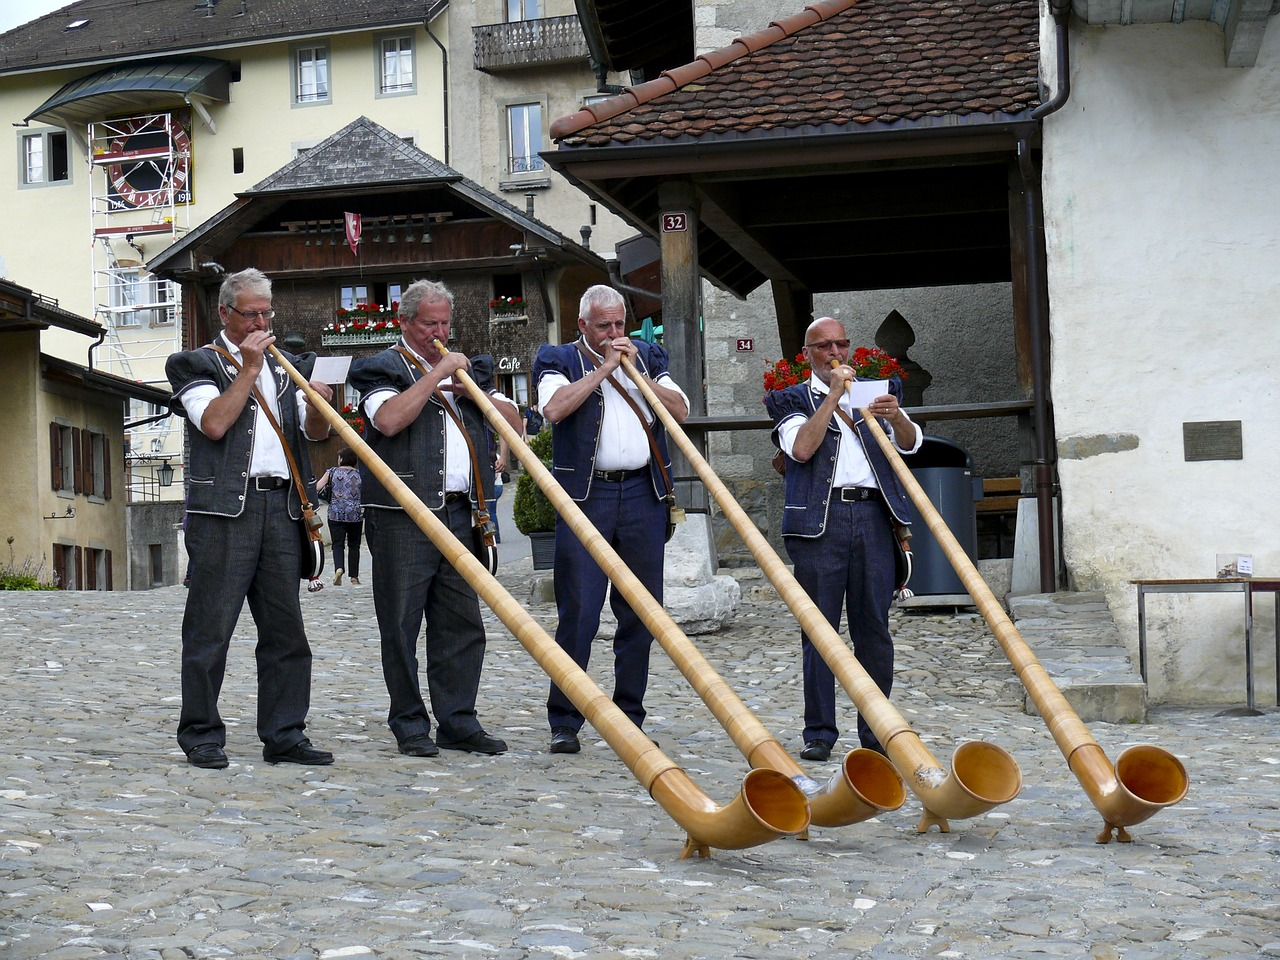 Traditional musical instruments